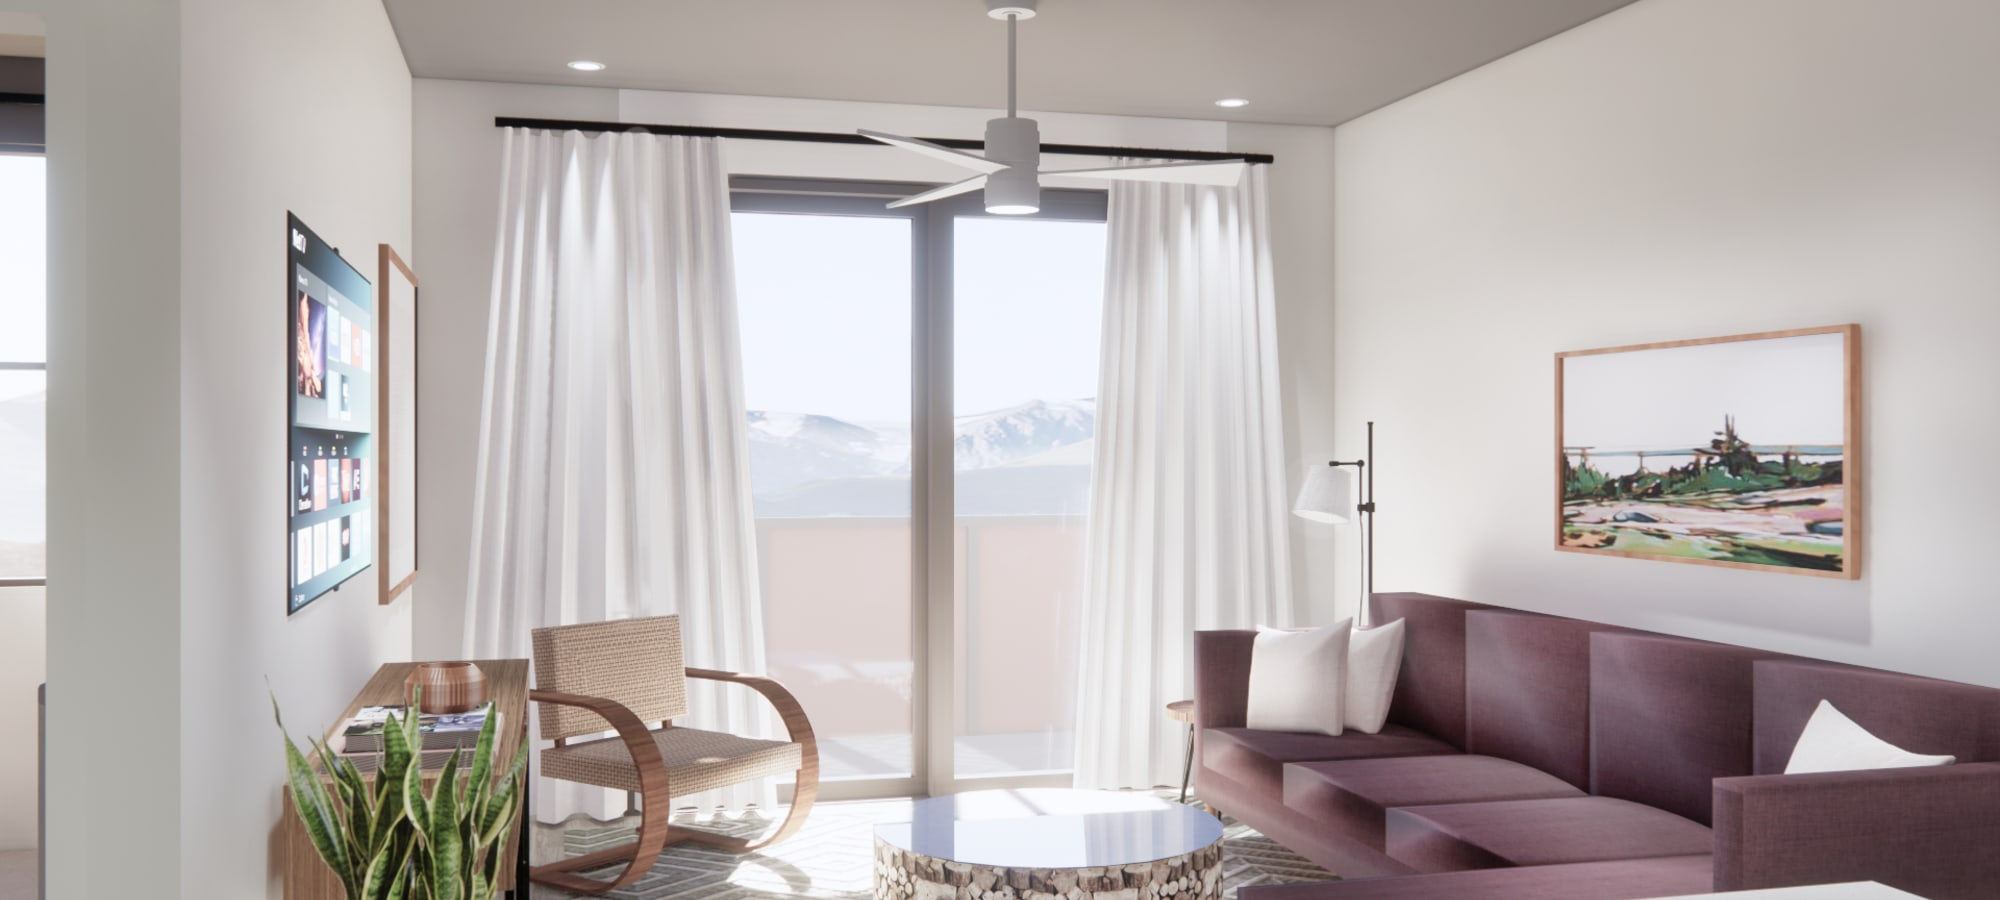 Rendering of open living room with tons of natural light at The Piedmont in Tempe, Arizona